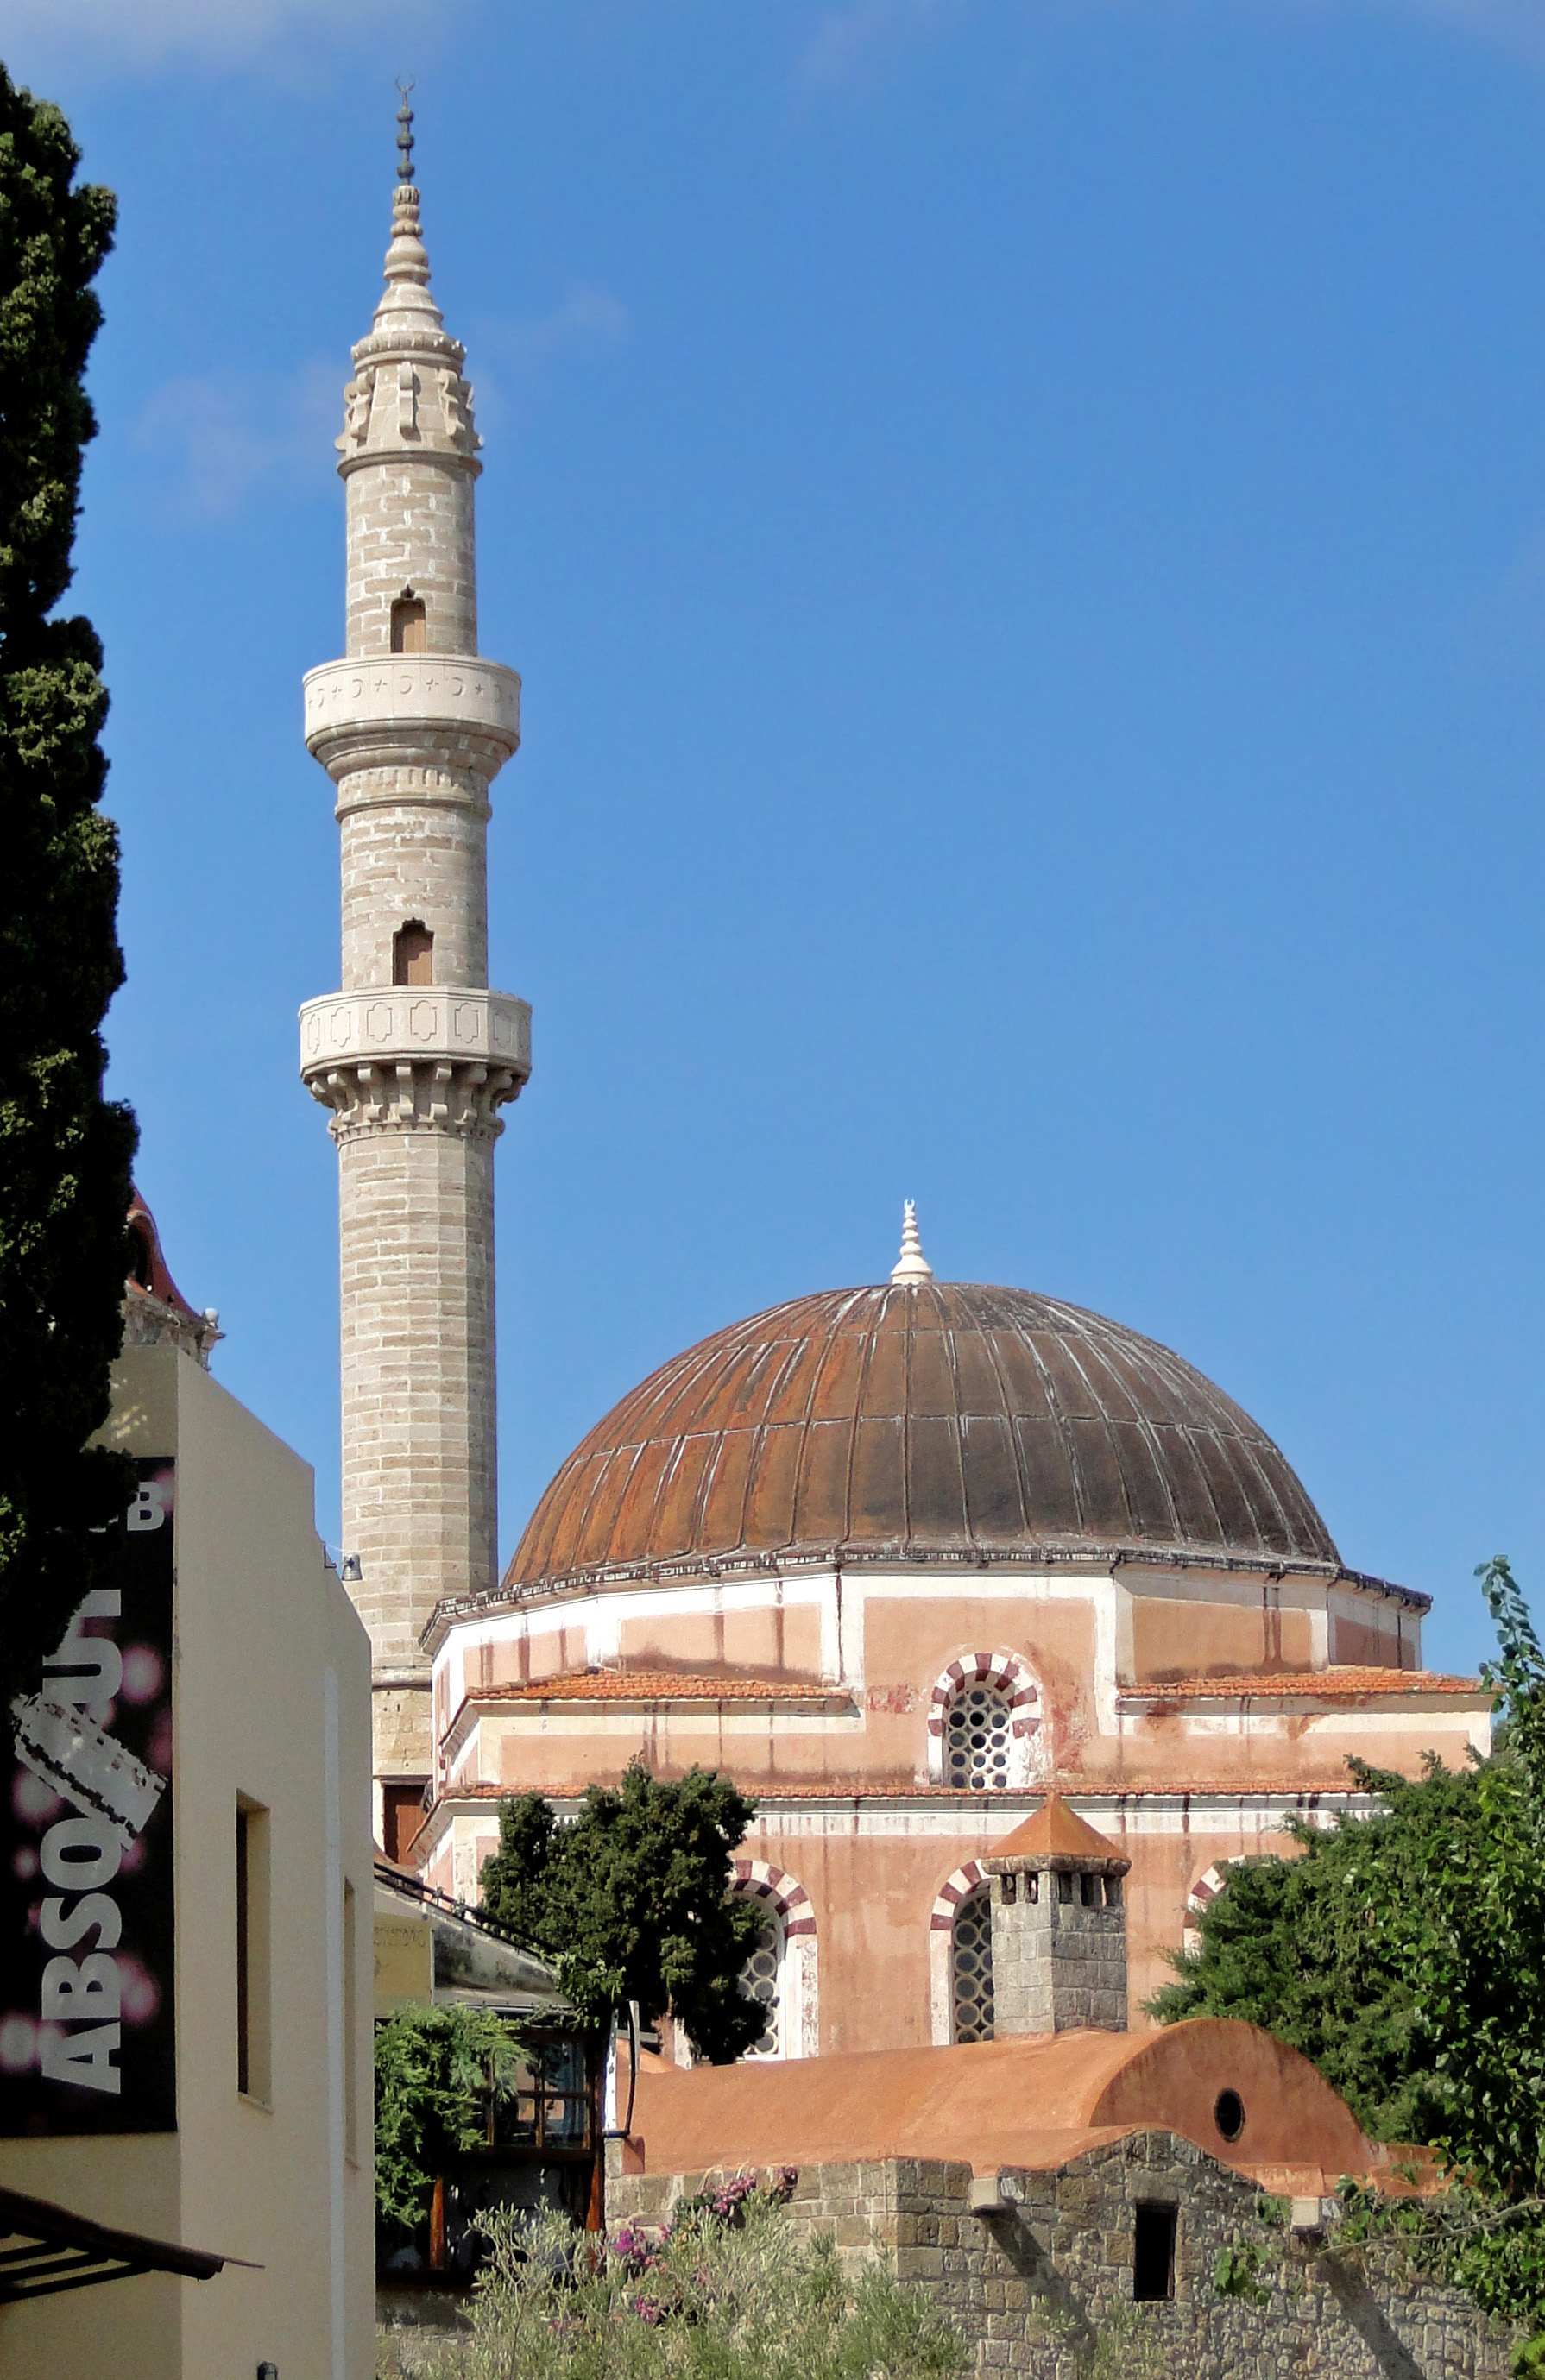 File:Suleiman Mosque (Rhodes) 01.jpg - Wikimedia Commons